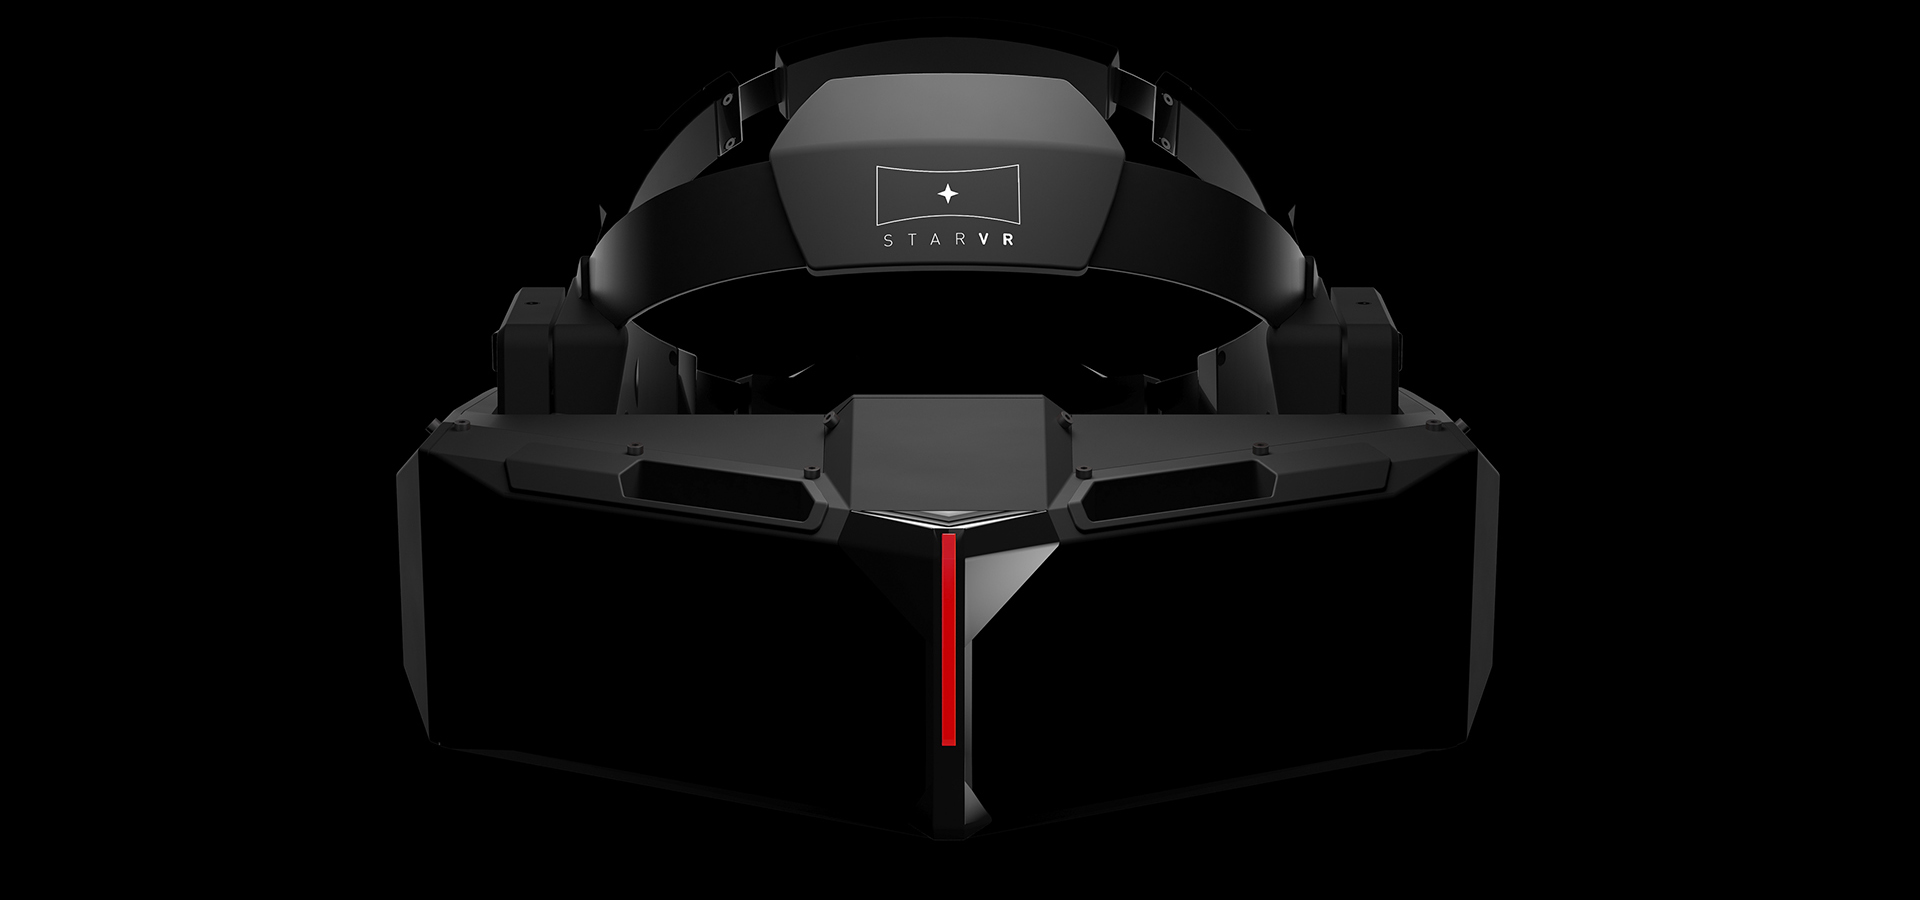 IMAX Unveils Comprehensive Virtual Reality Strategy; Launches Location-based Initiative Through Partnership with Starbreeze